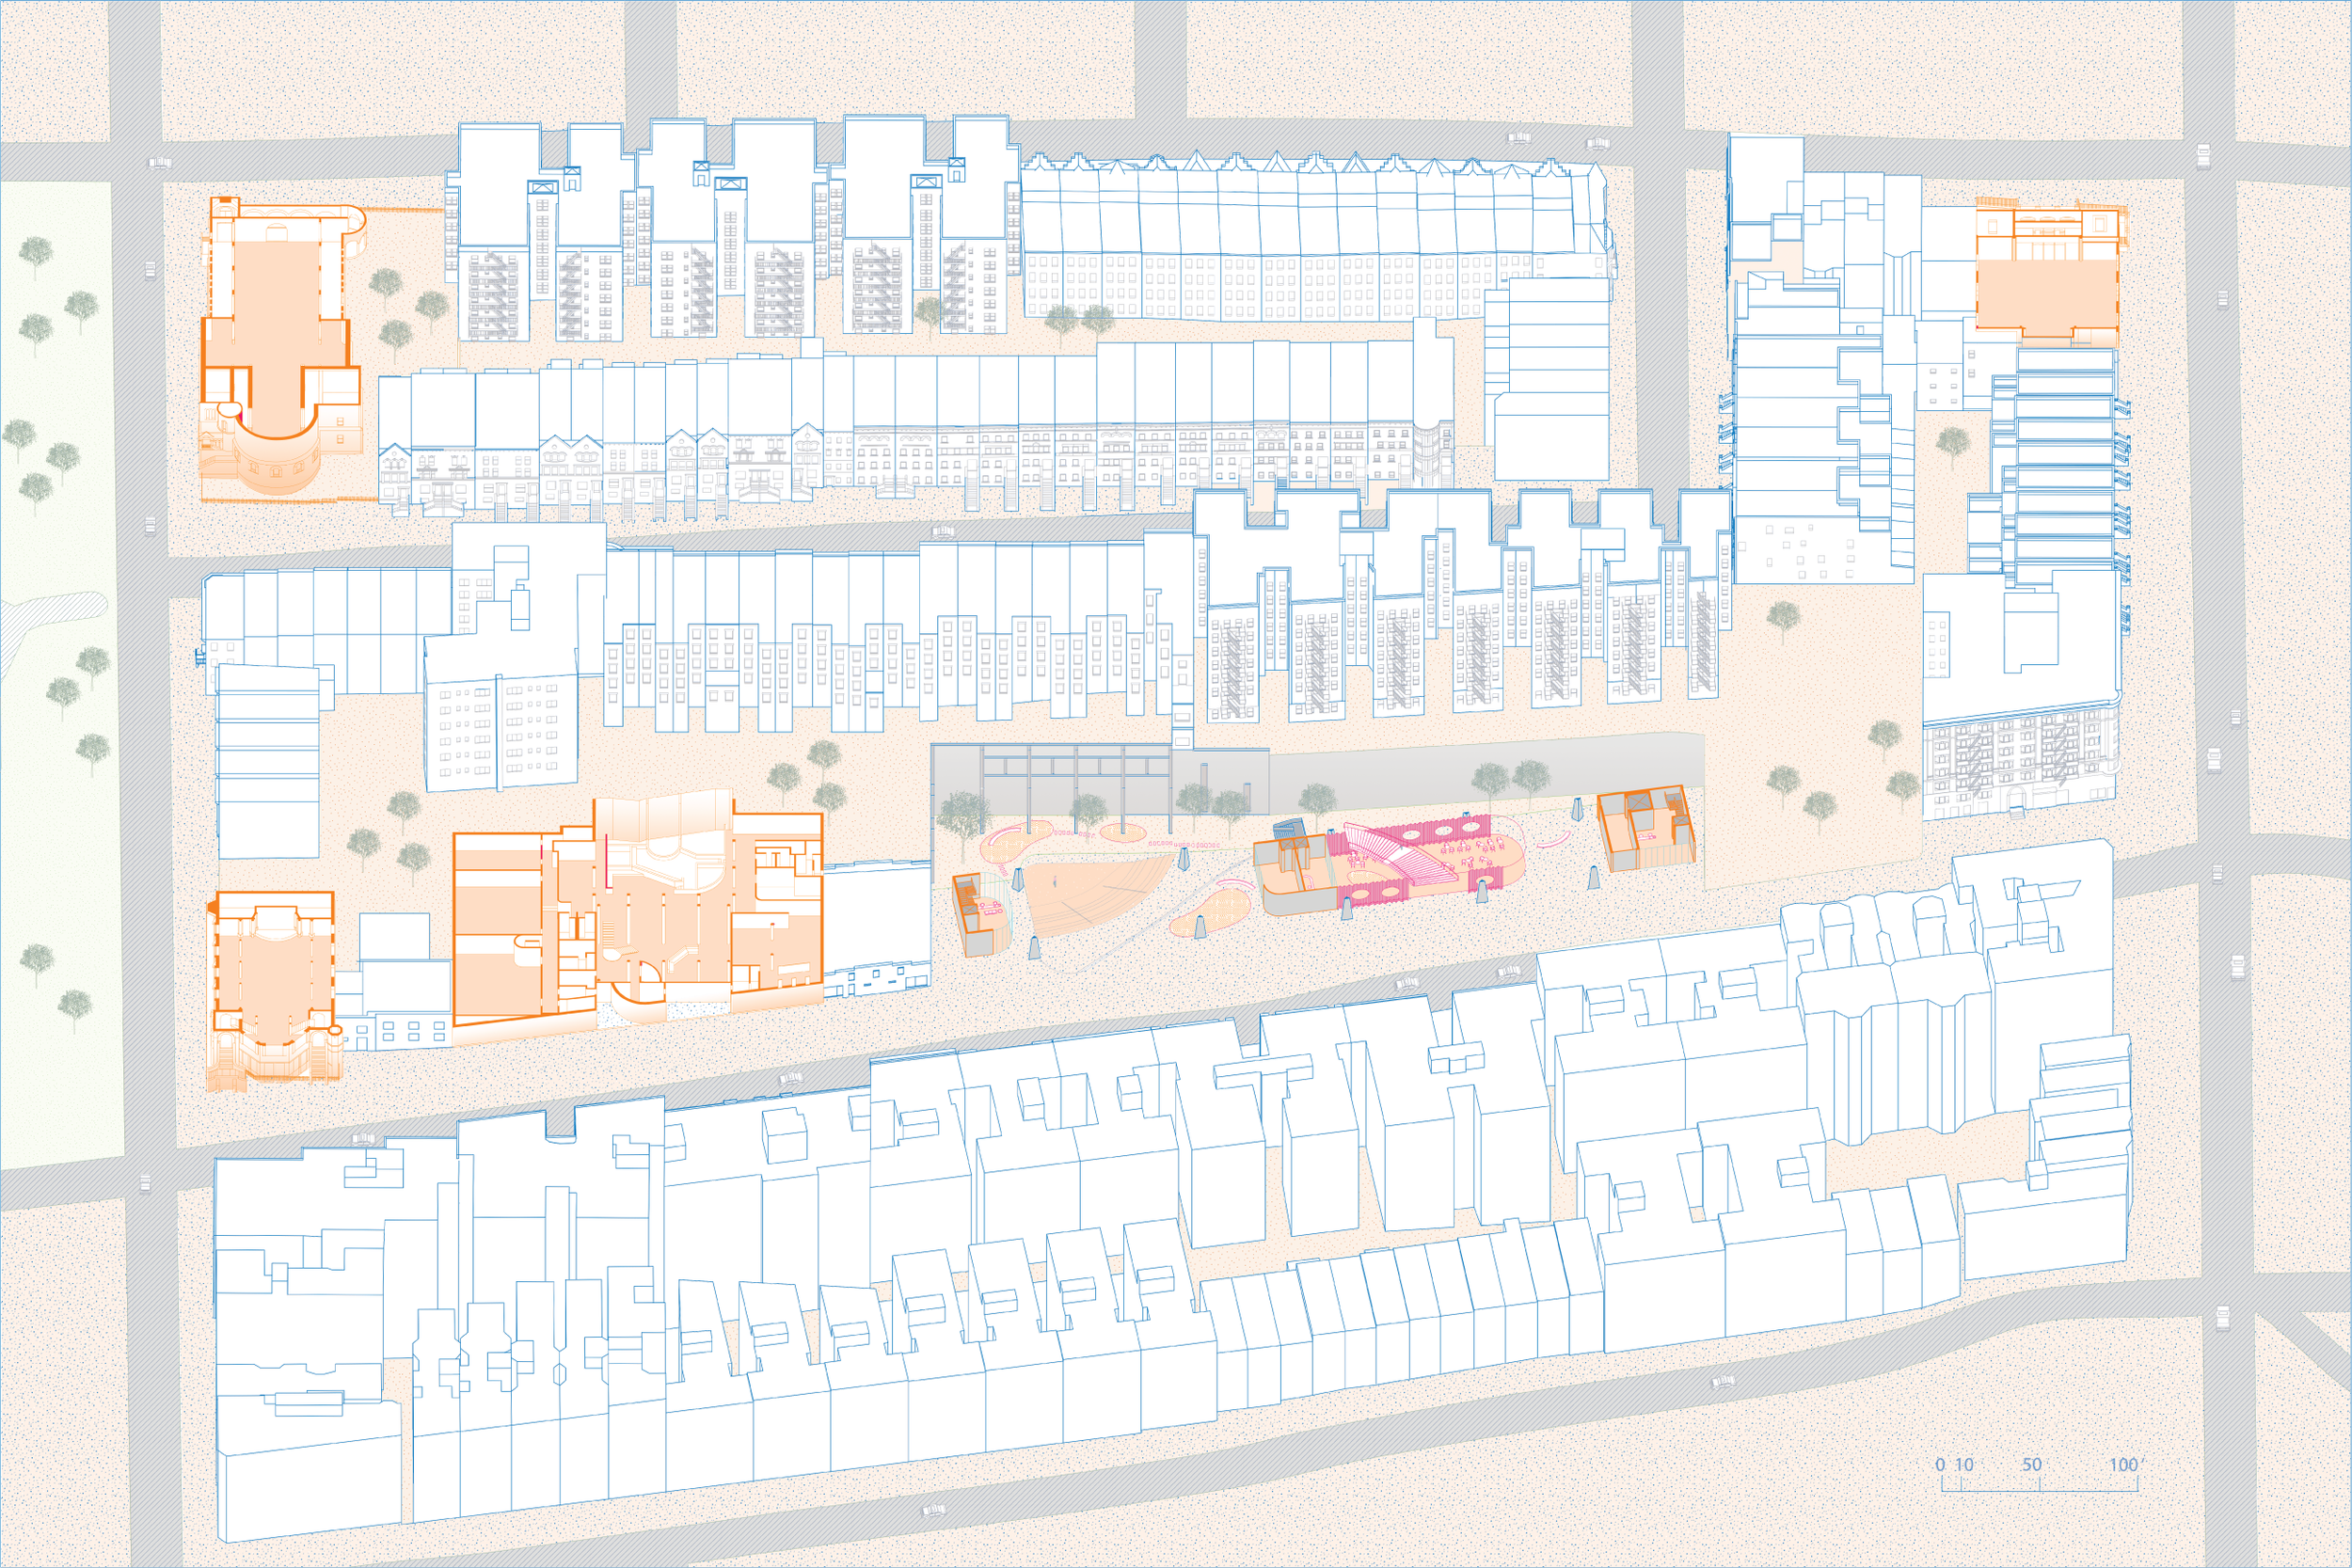 Section, Site Public Space Context/Churches, Harlem School of Art